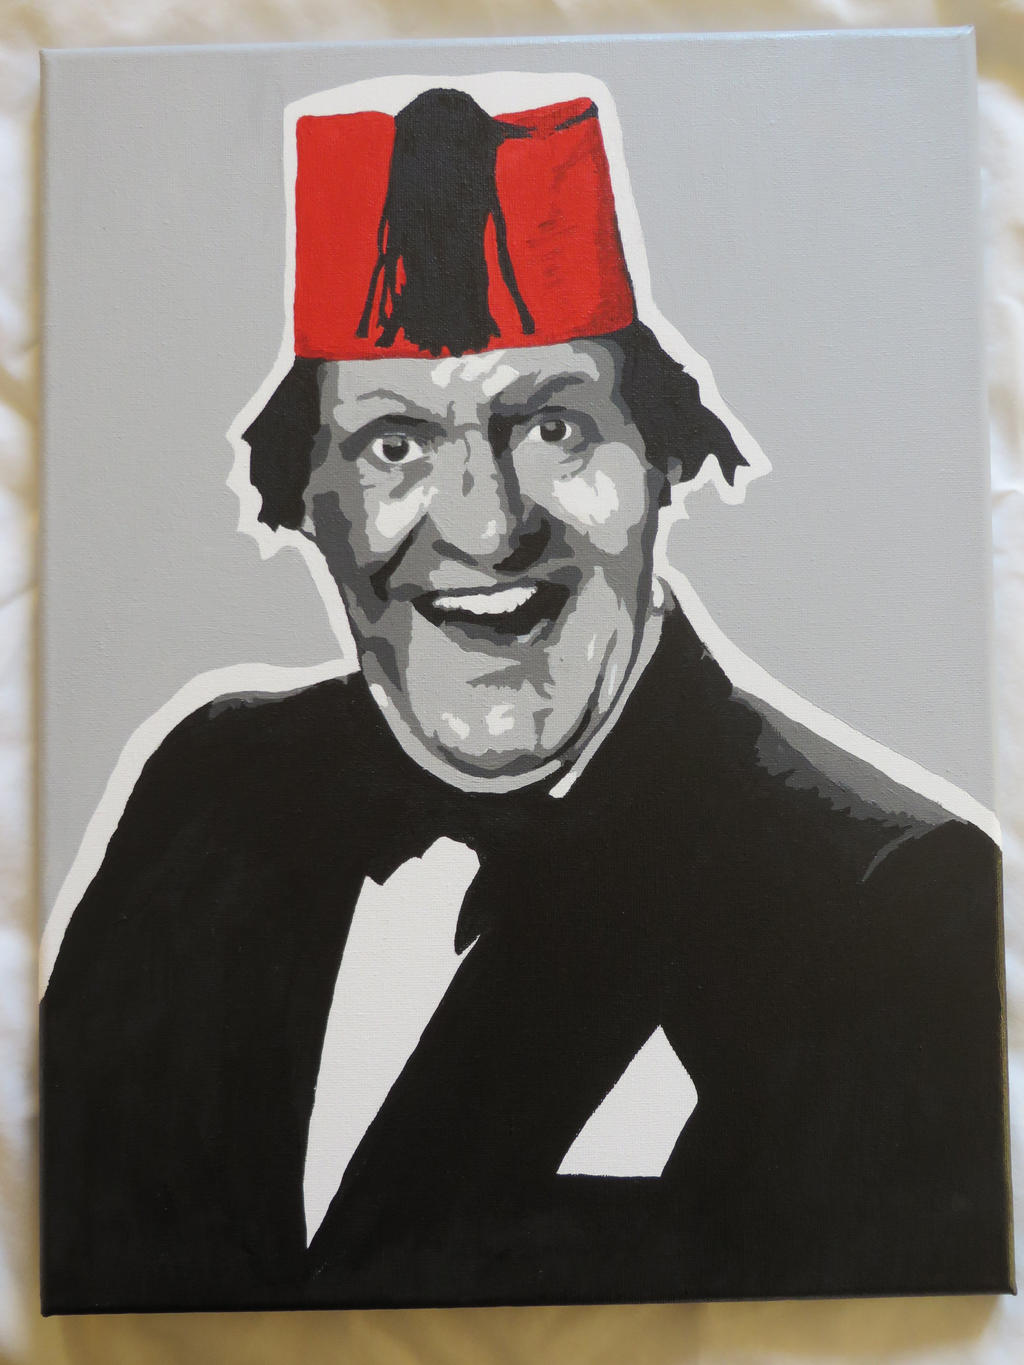 The one and only Tommy Cooper (sold) by ennersemporium